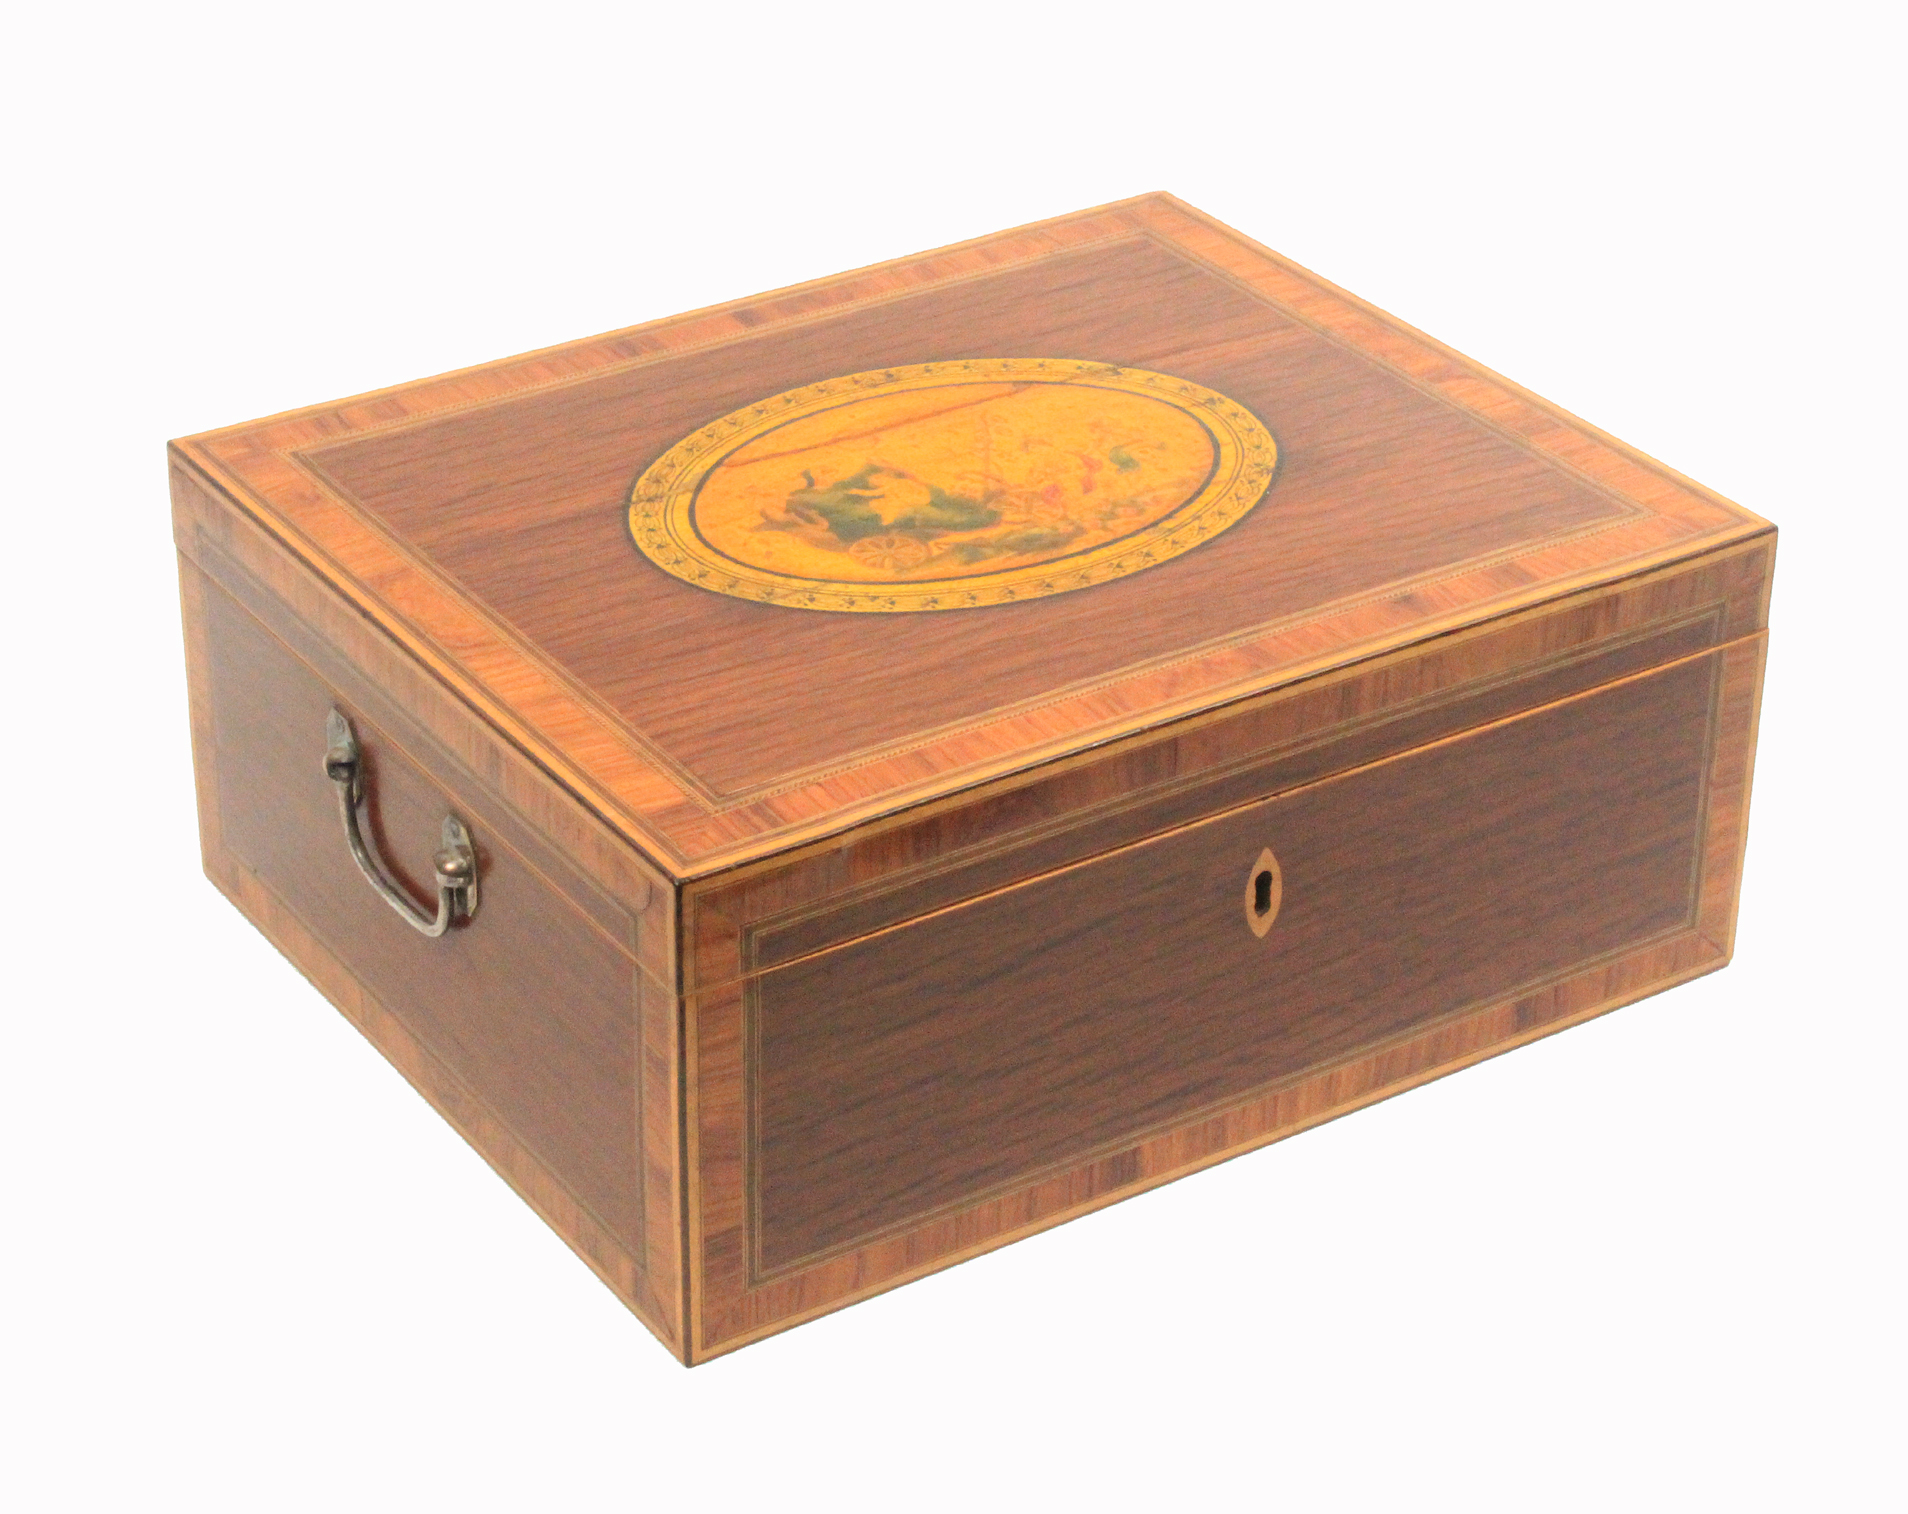 An early 19th century Tunbridge print decorated documentary sewing box of rectangular form